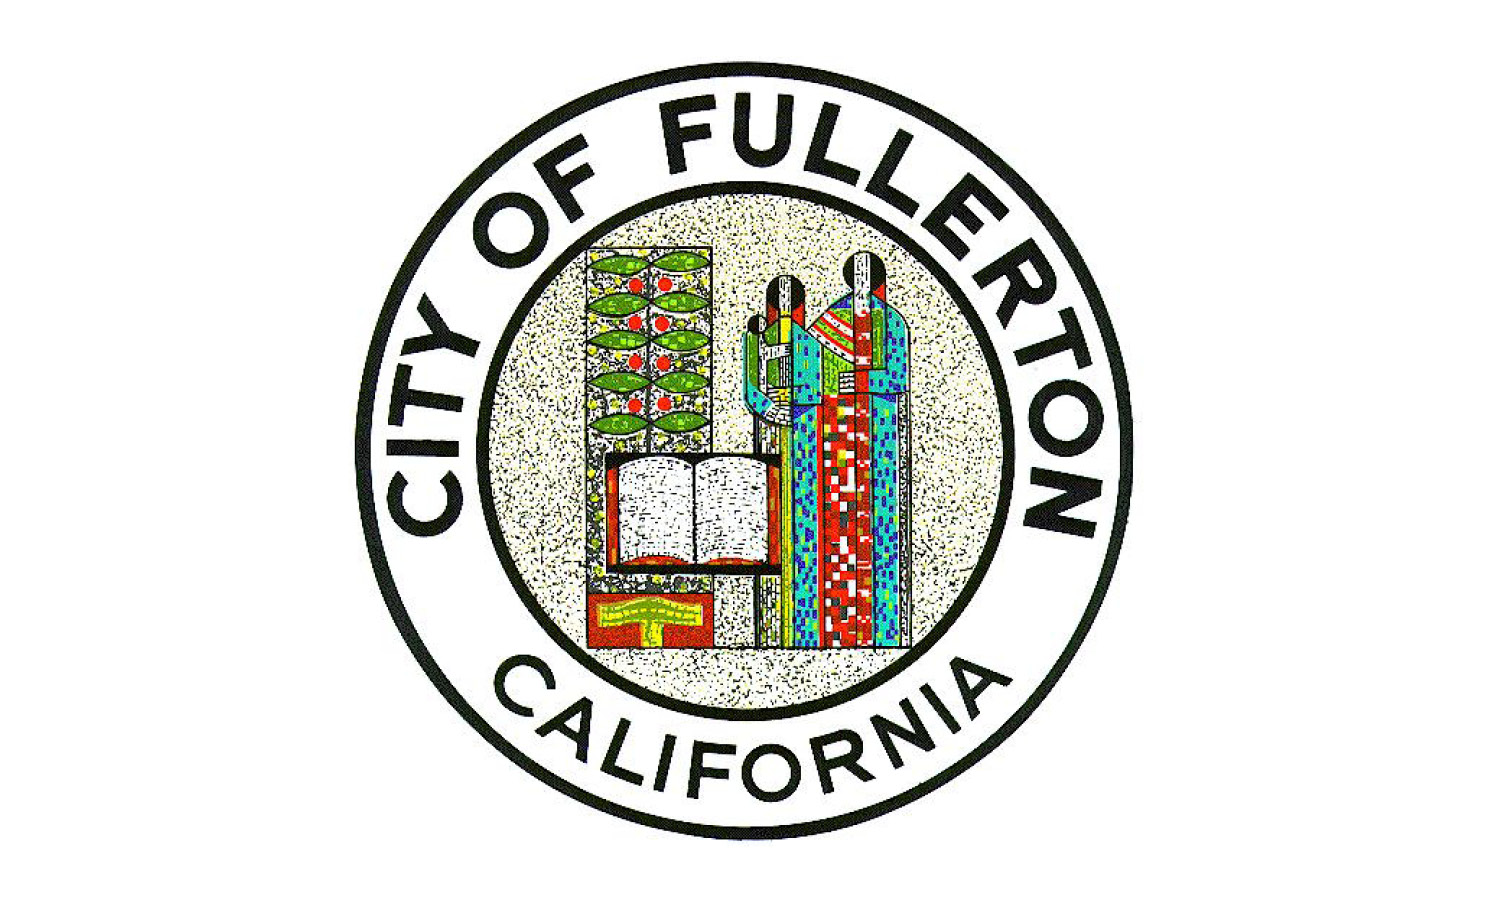 City of Fullerton